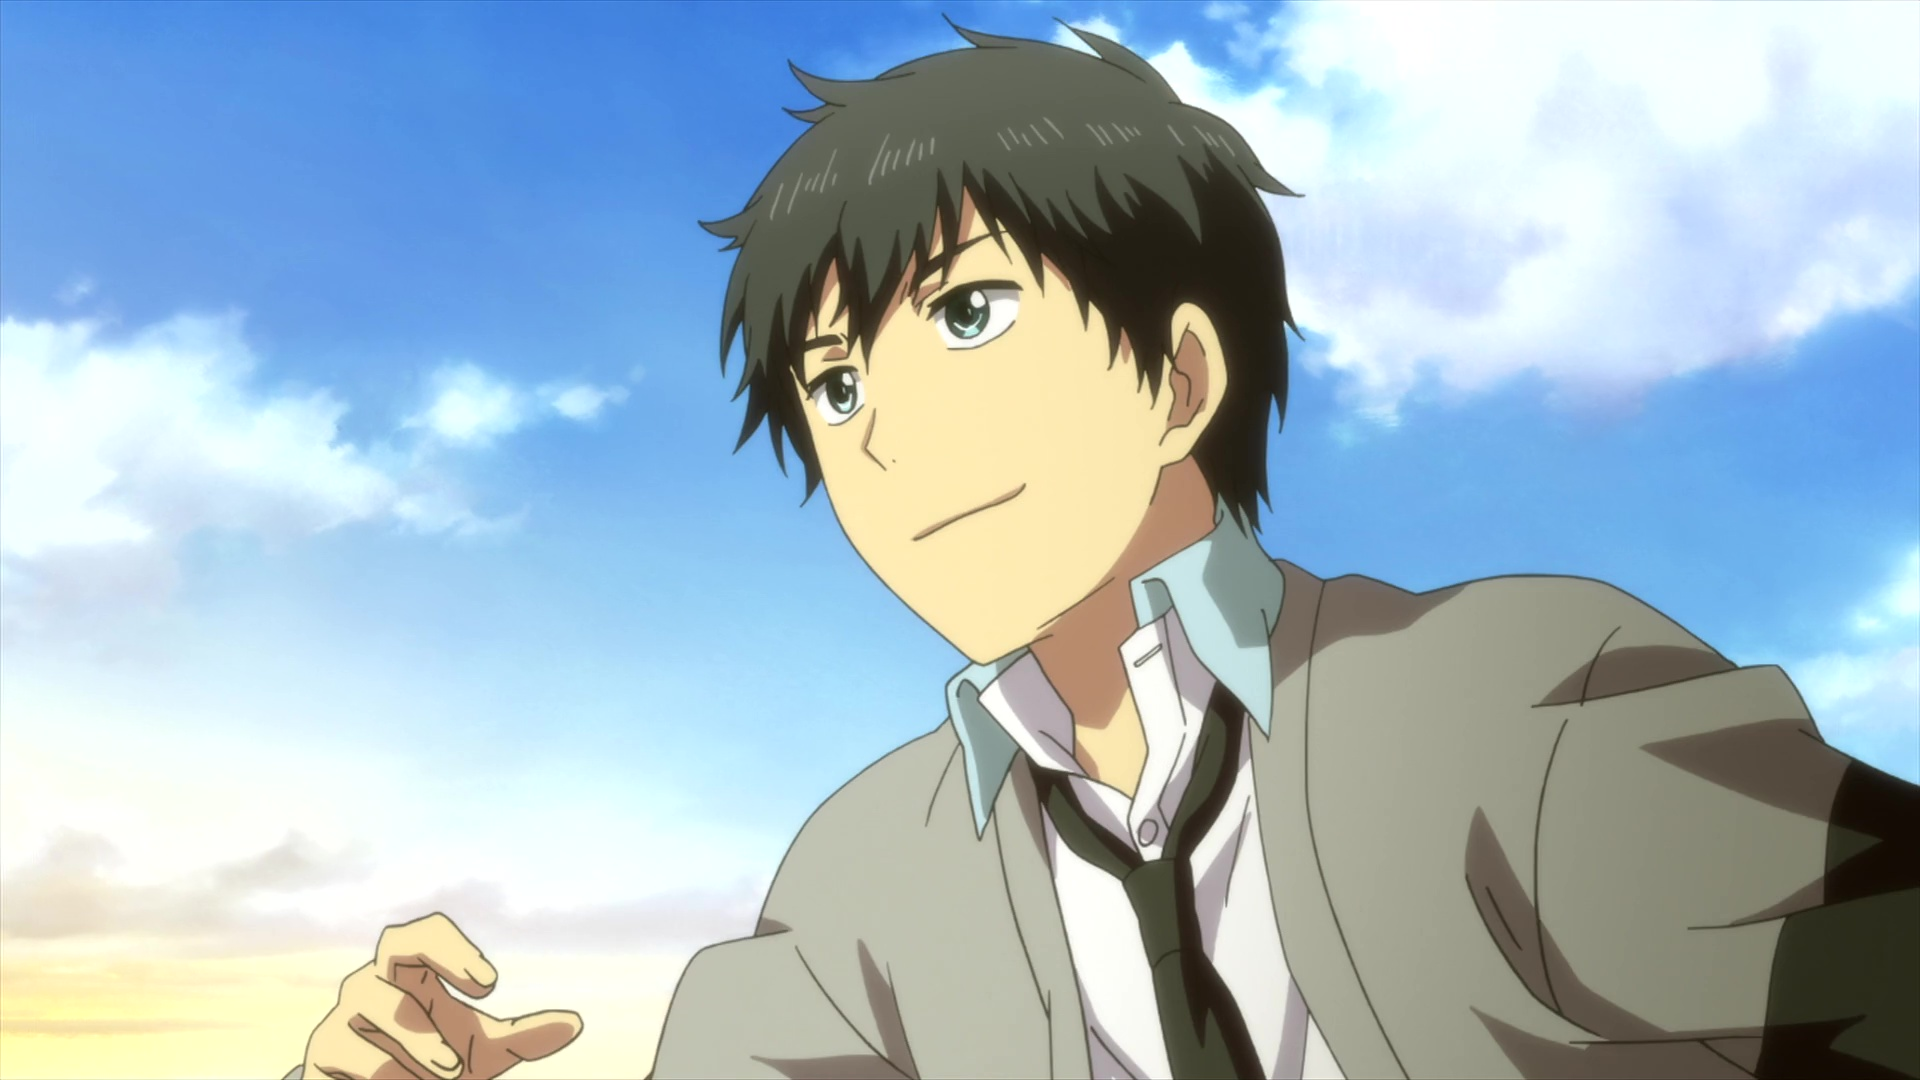 Good Ol' Review and Appreciation: The Beautiful, Poignant and Resonant <i>ReLIFE</i>